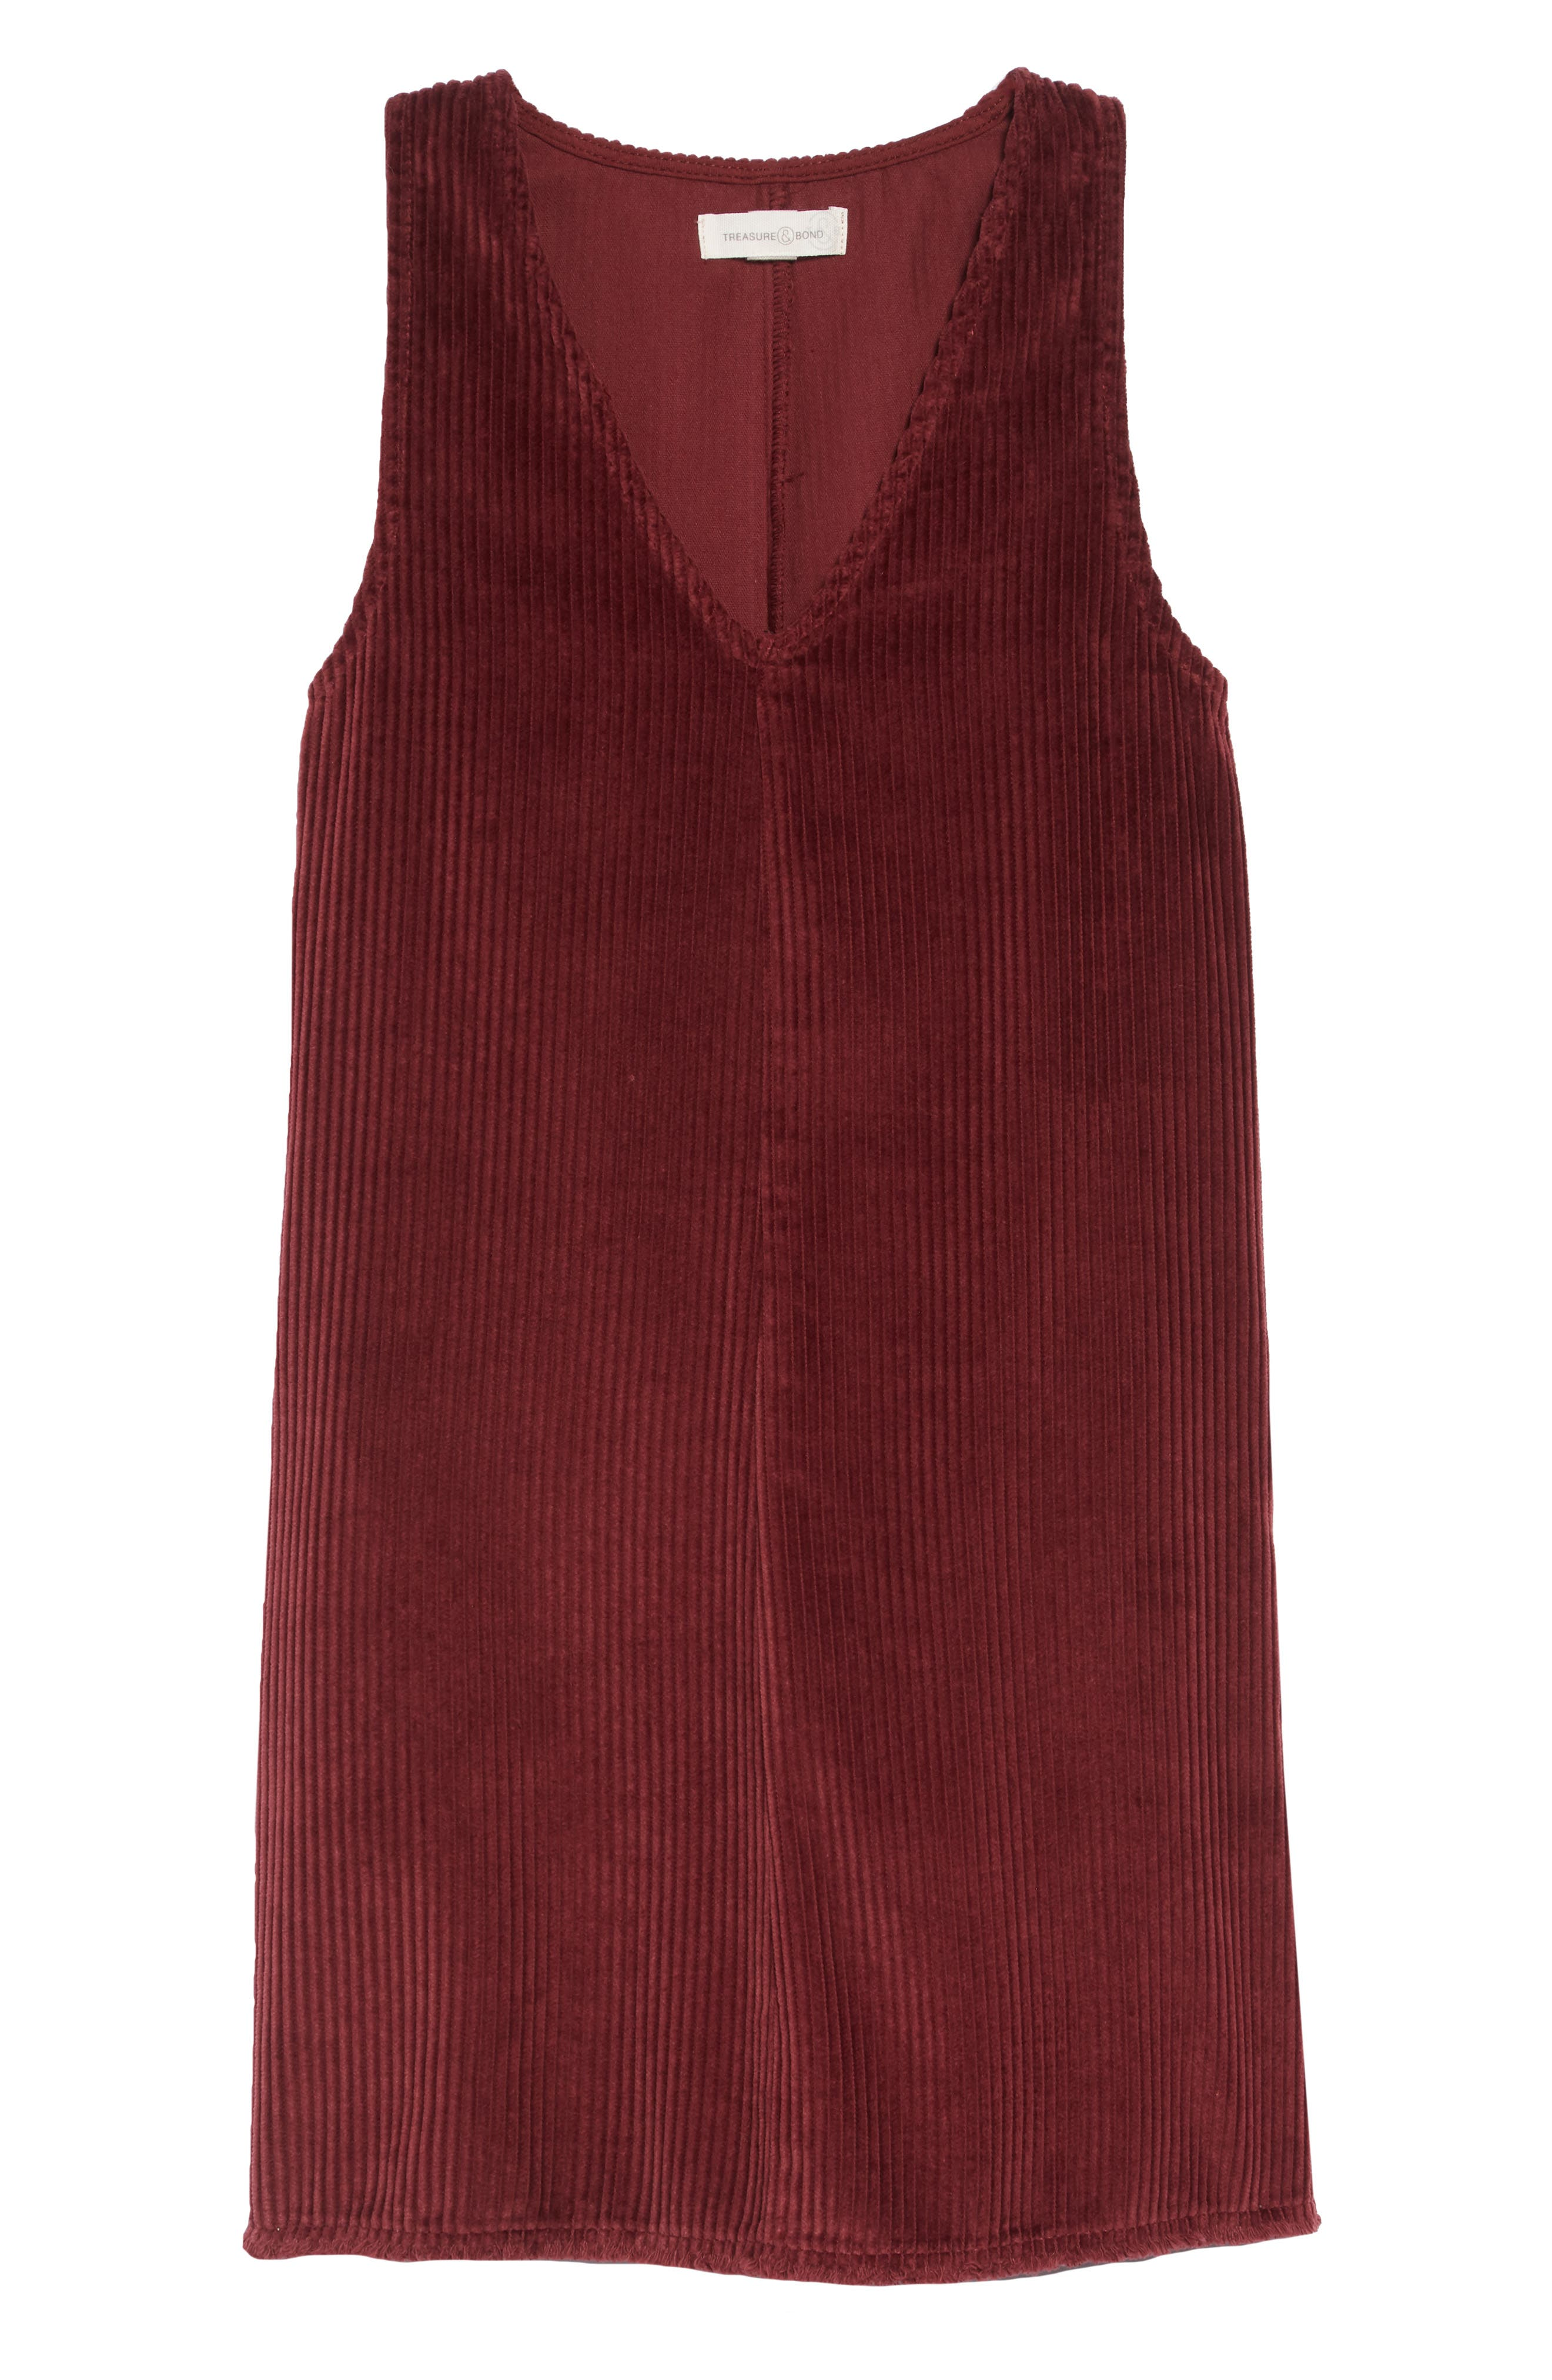 Corduroy Jumper Dress,                         Main,                         color, RED TANNIN